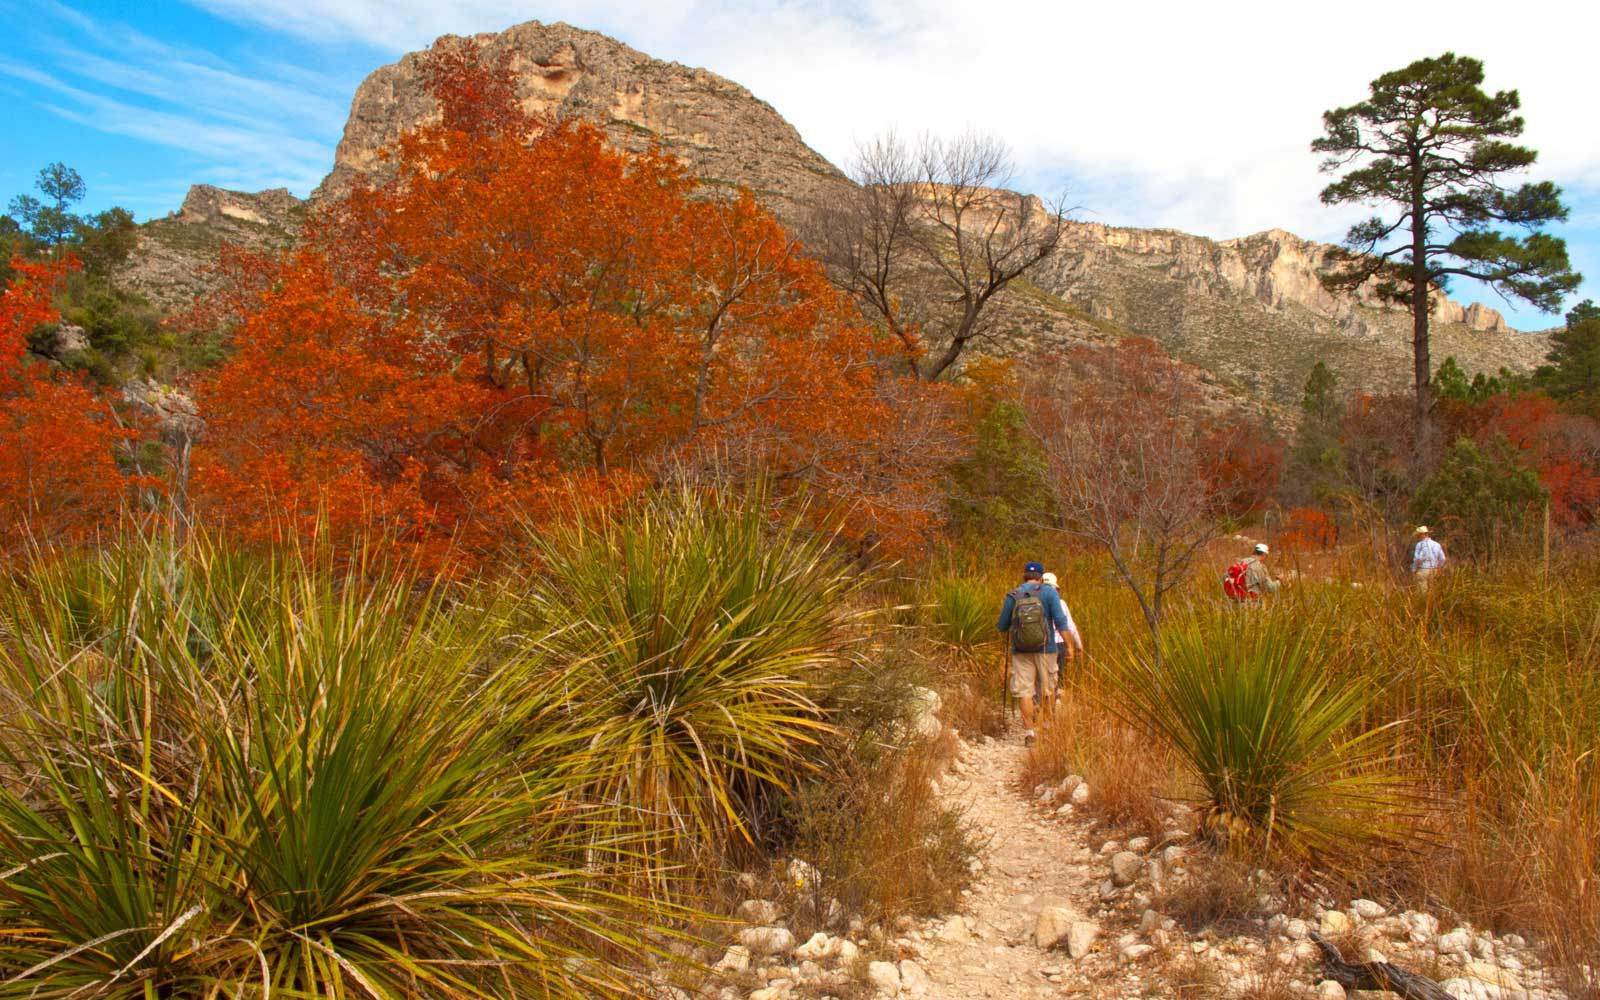 McKittrick Canyon Scenic Hiking Trail with autumn foliage, Guadalupe Mountain National Park, Texas, USA